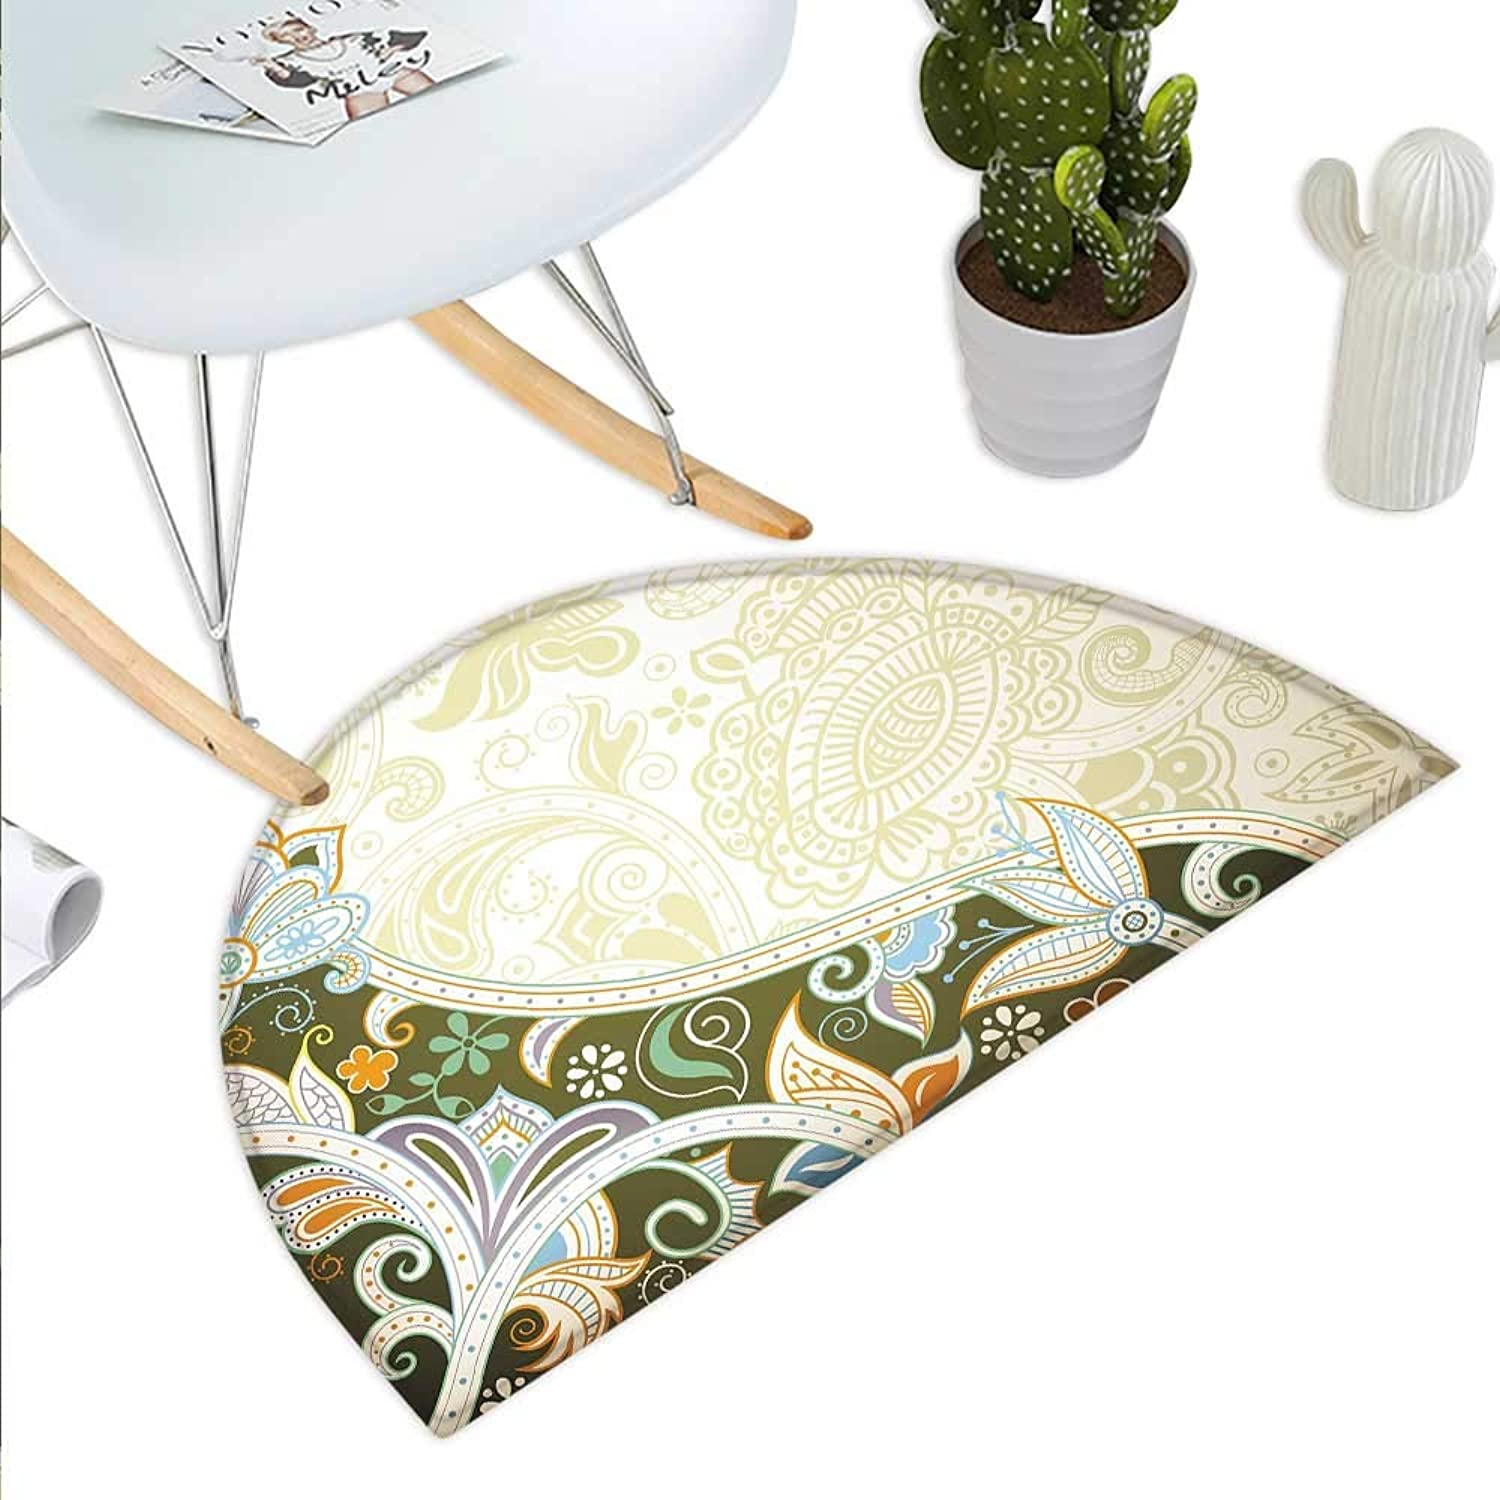 Olive Green Semicircle Doormat Abstract Floral Pattern Leaves and Stripes Asian Inspirations Curvy Oriental Halfmoon doormats H 27.5  xD 41.3  Multicolor